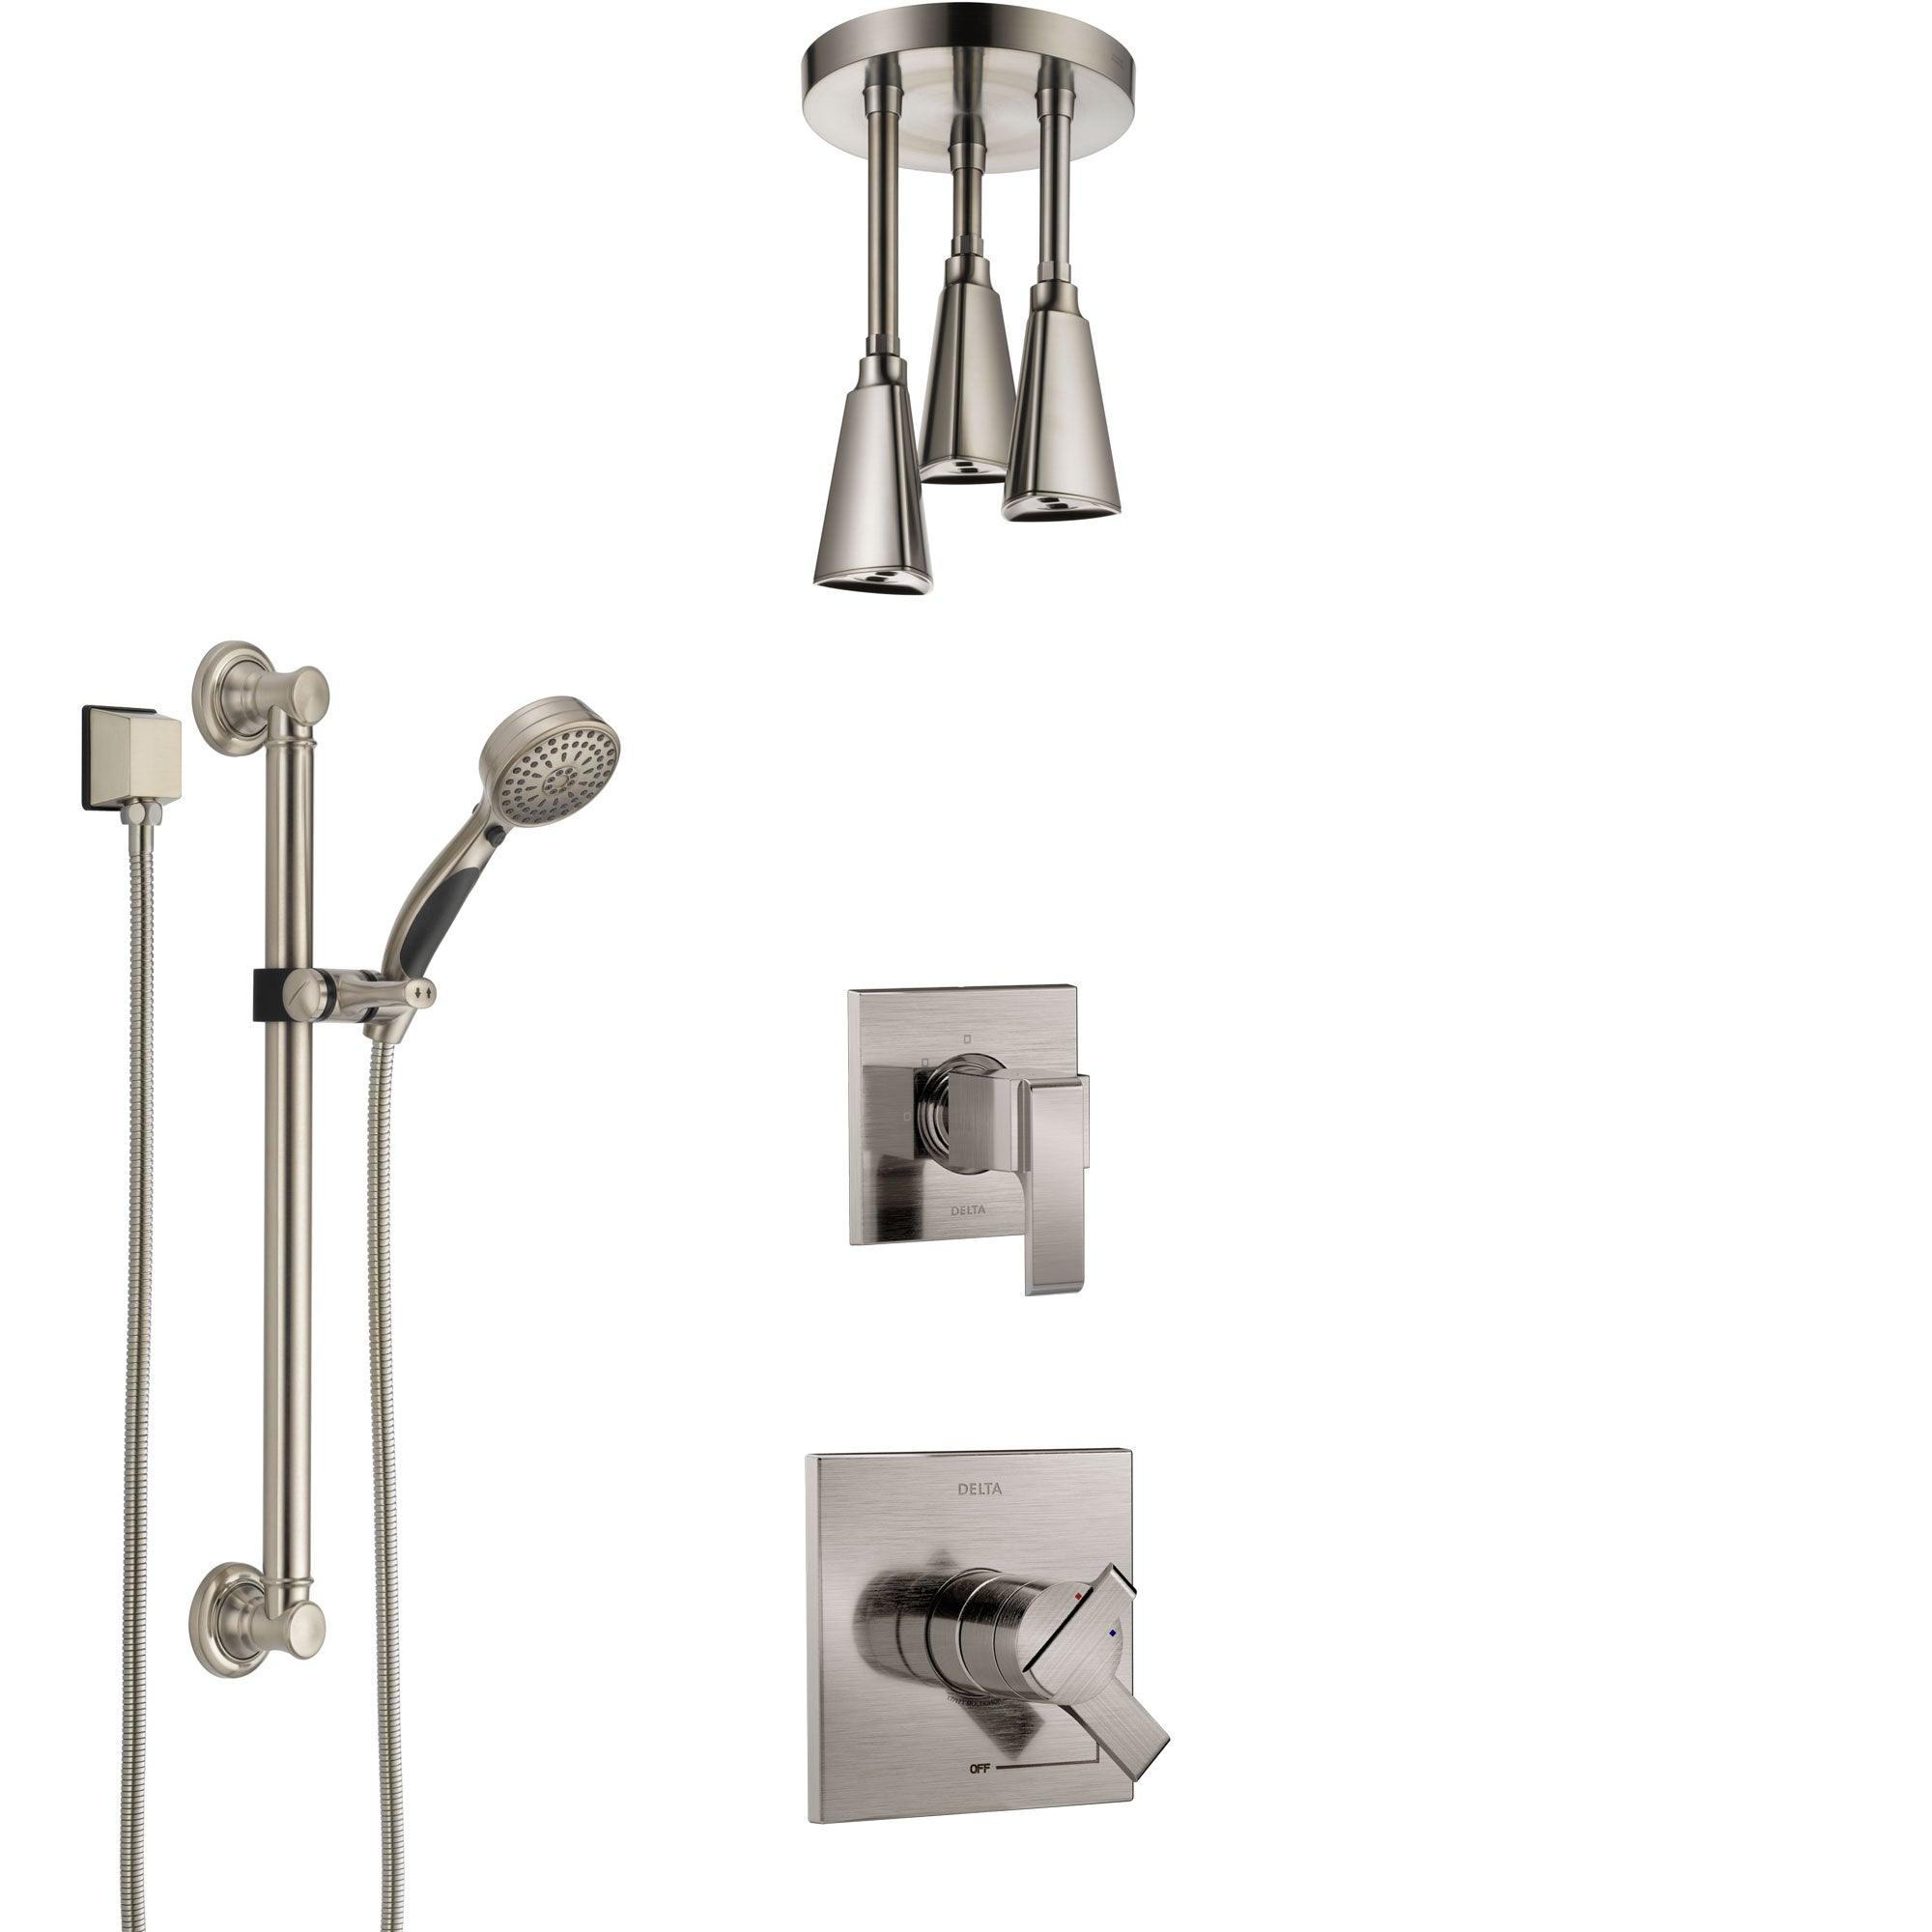 Delta Ara Stainless Steel Finish Shower System with Dual Control Handle, Diverter, Ceiling Mount Showerhead, and Hand Shower with Grab Bar SS1767SS4